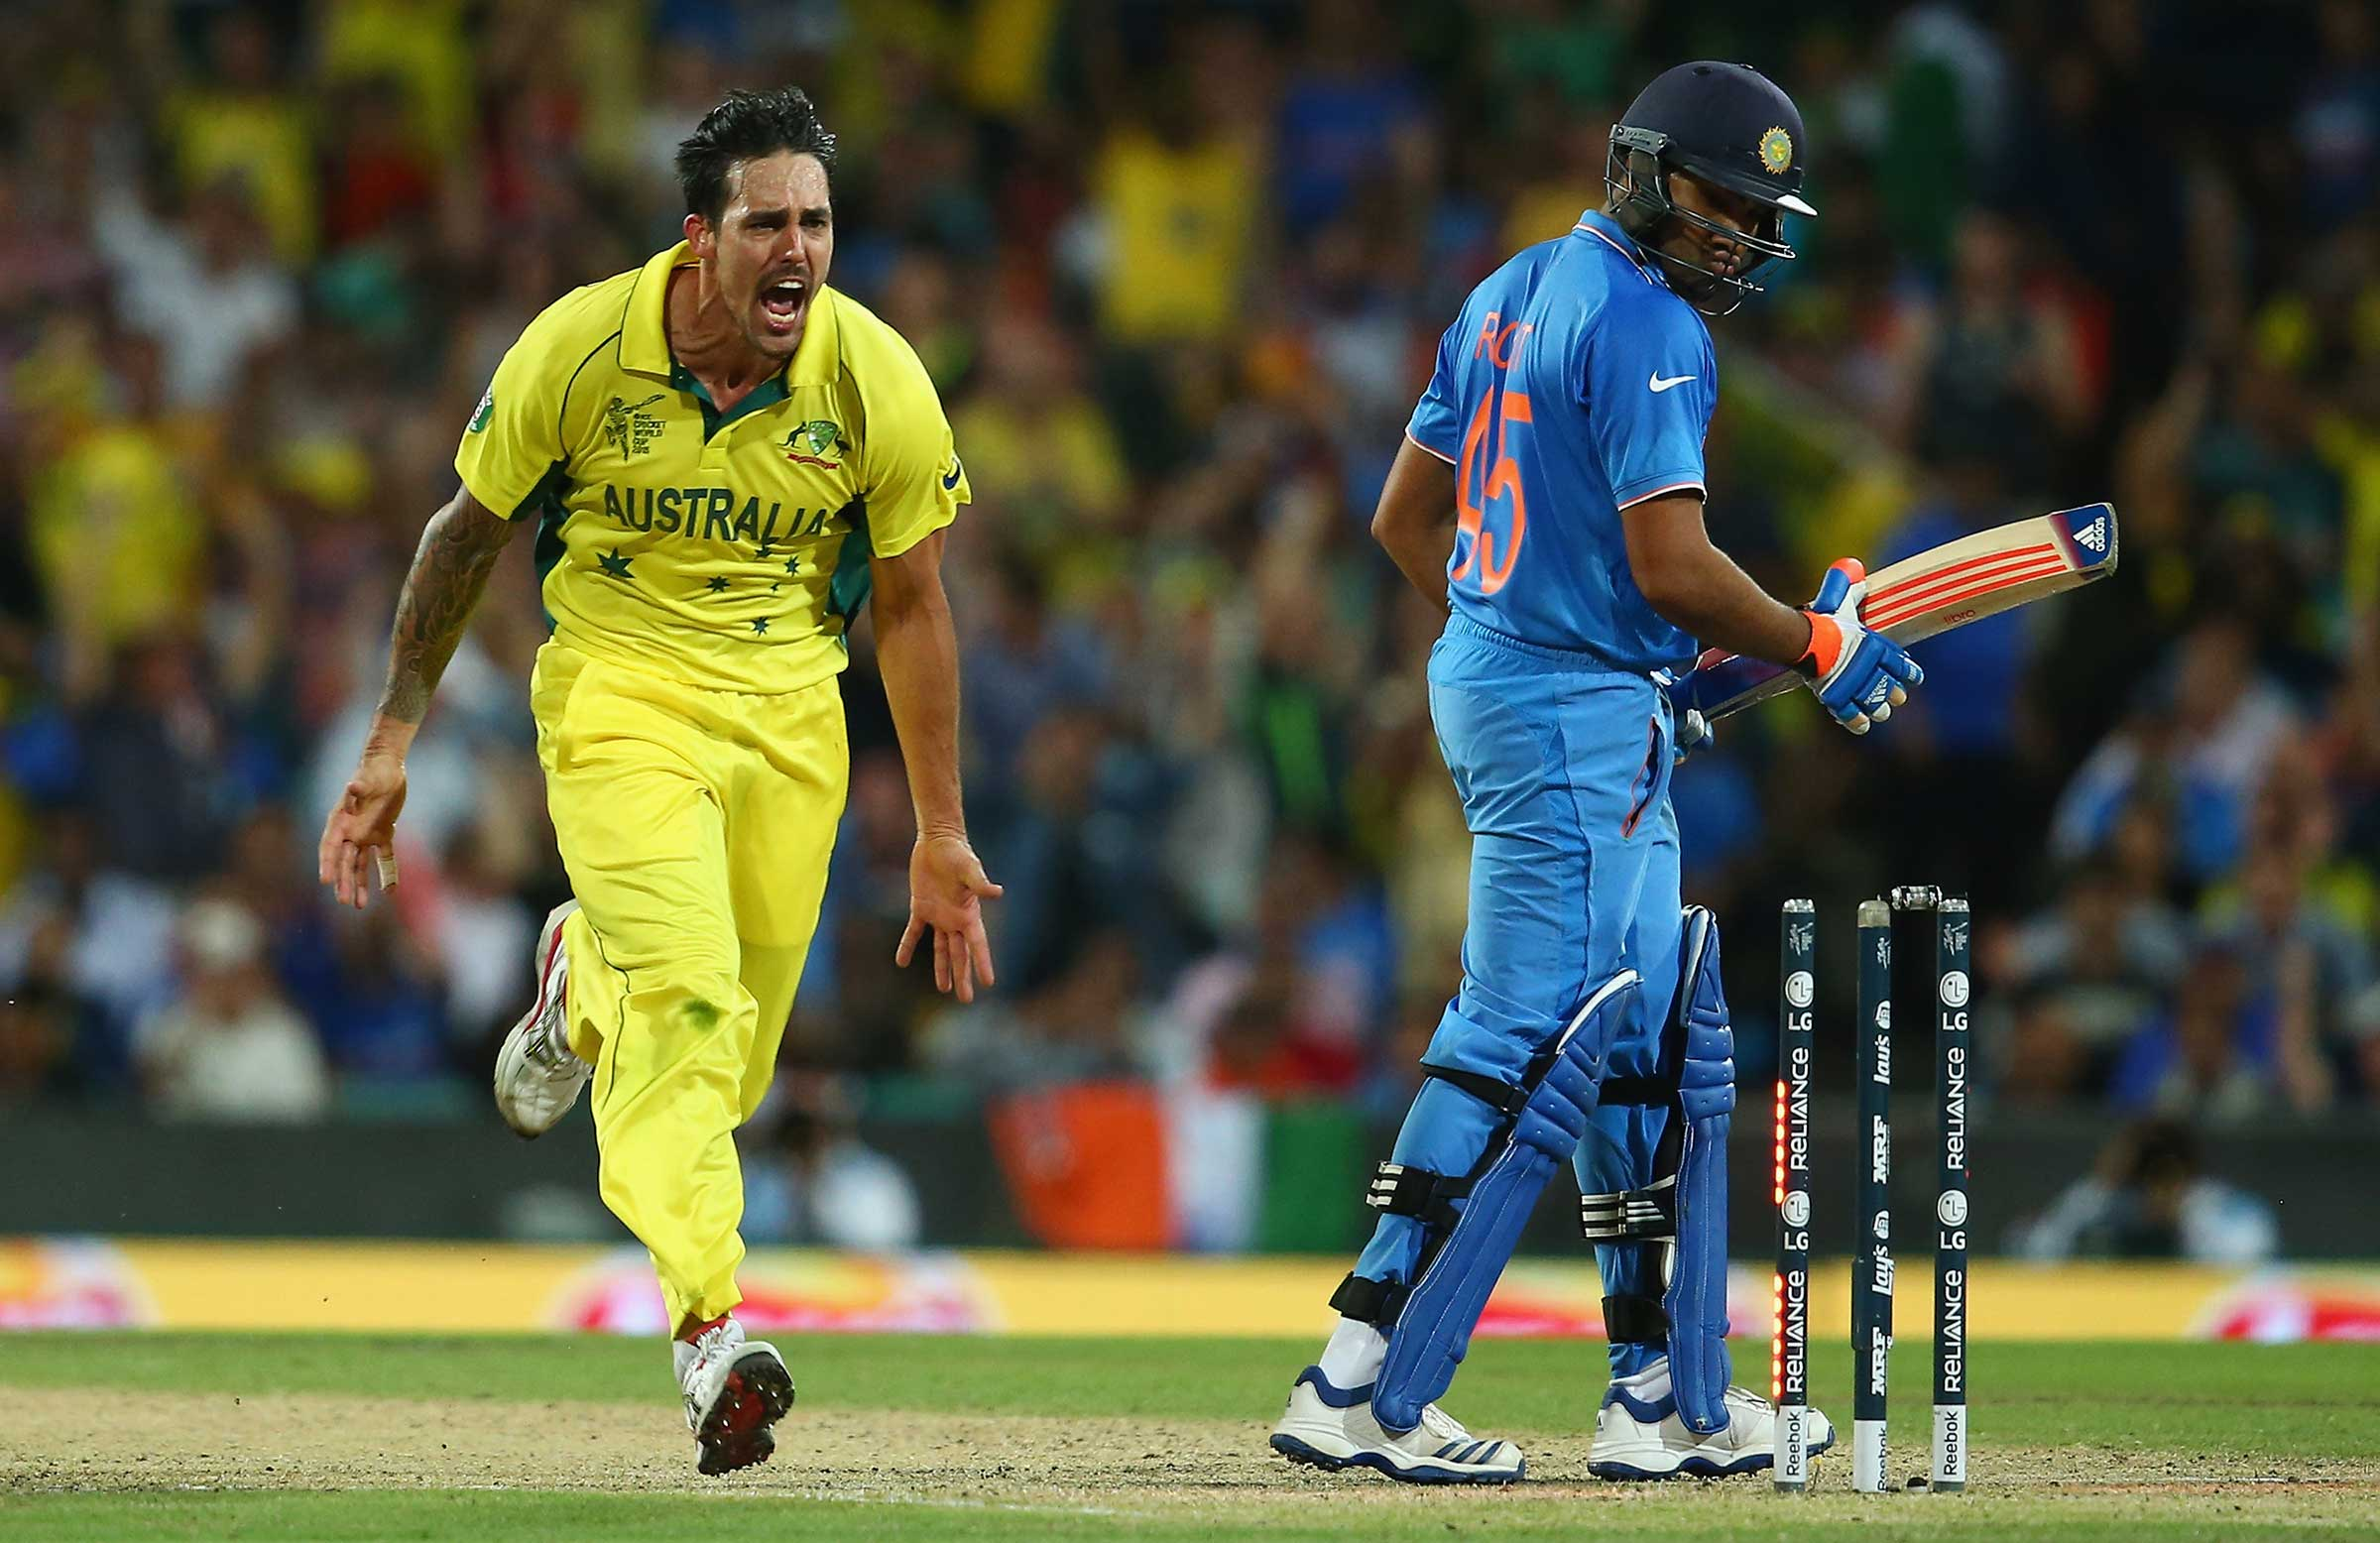 On a rampage in the semi-final against India // Getty